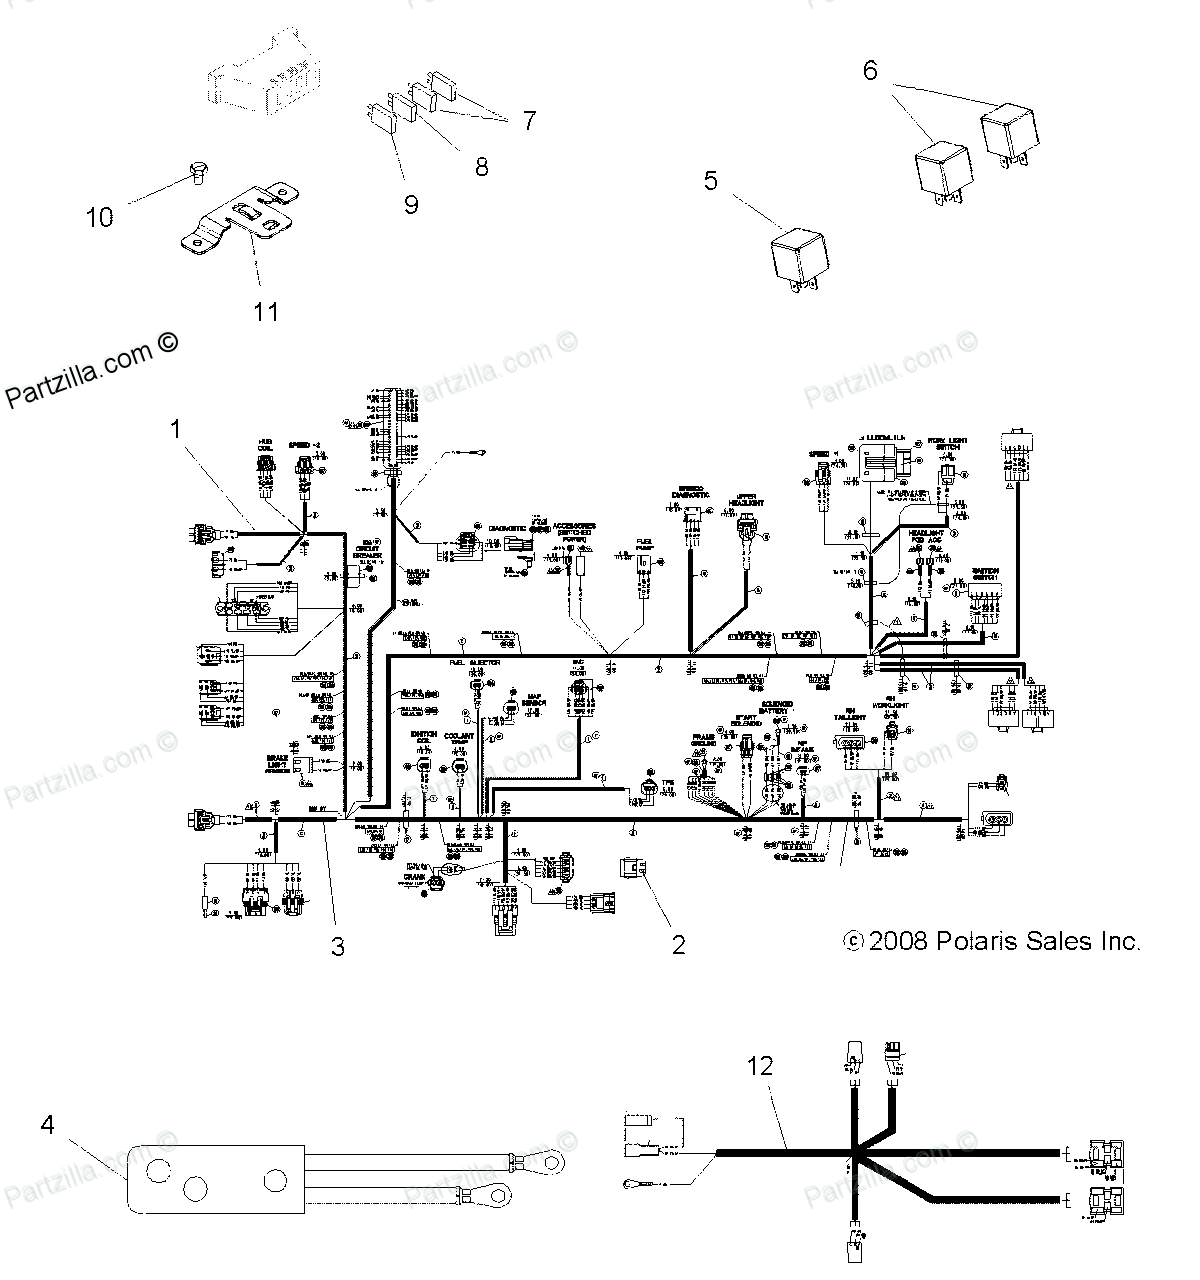 2008 polaris wiring diagram 2008 polaris sportsman 800 twin wiring diagram - auto ... 87 polaris wiring diagram schematic